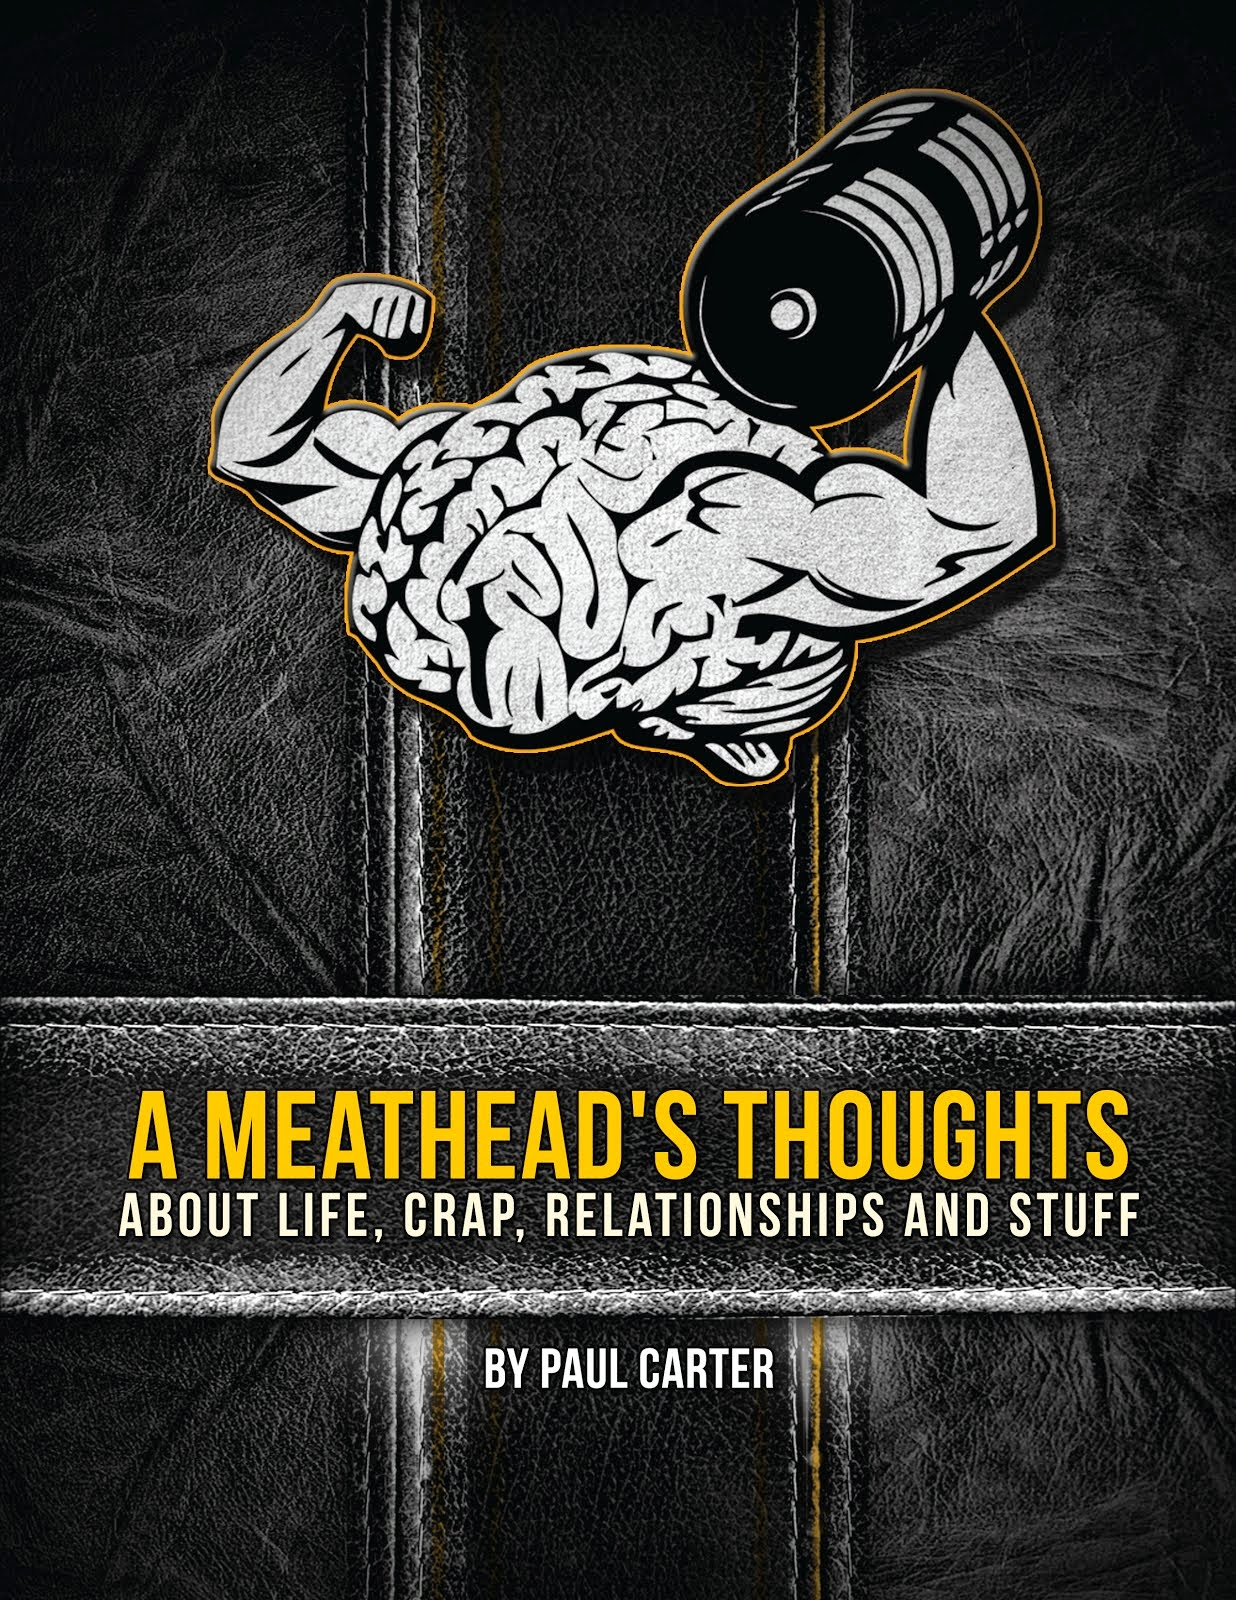 A Meathead's thoughts about life, crap, relationships, and stuff